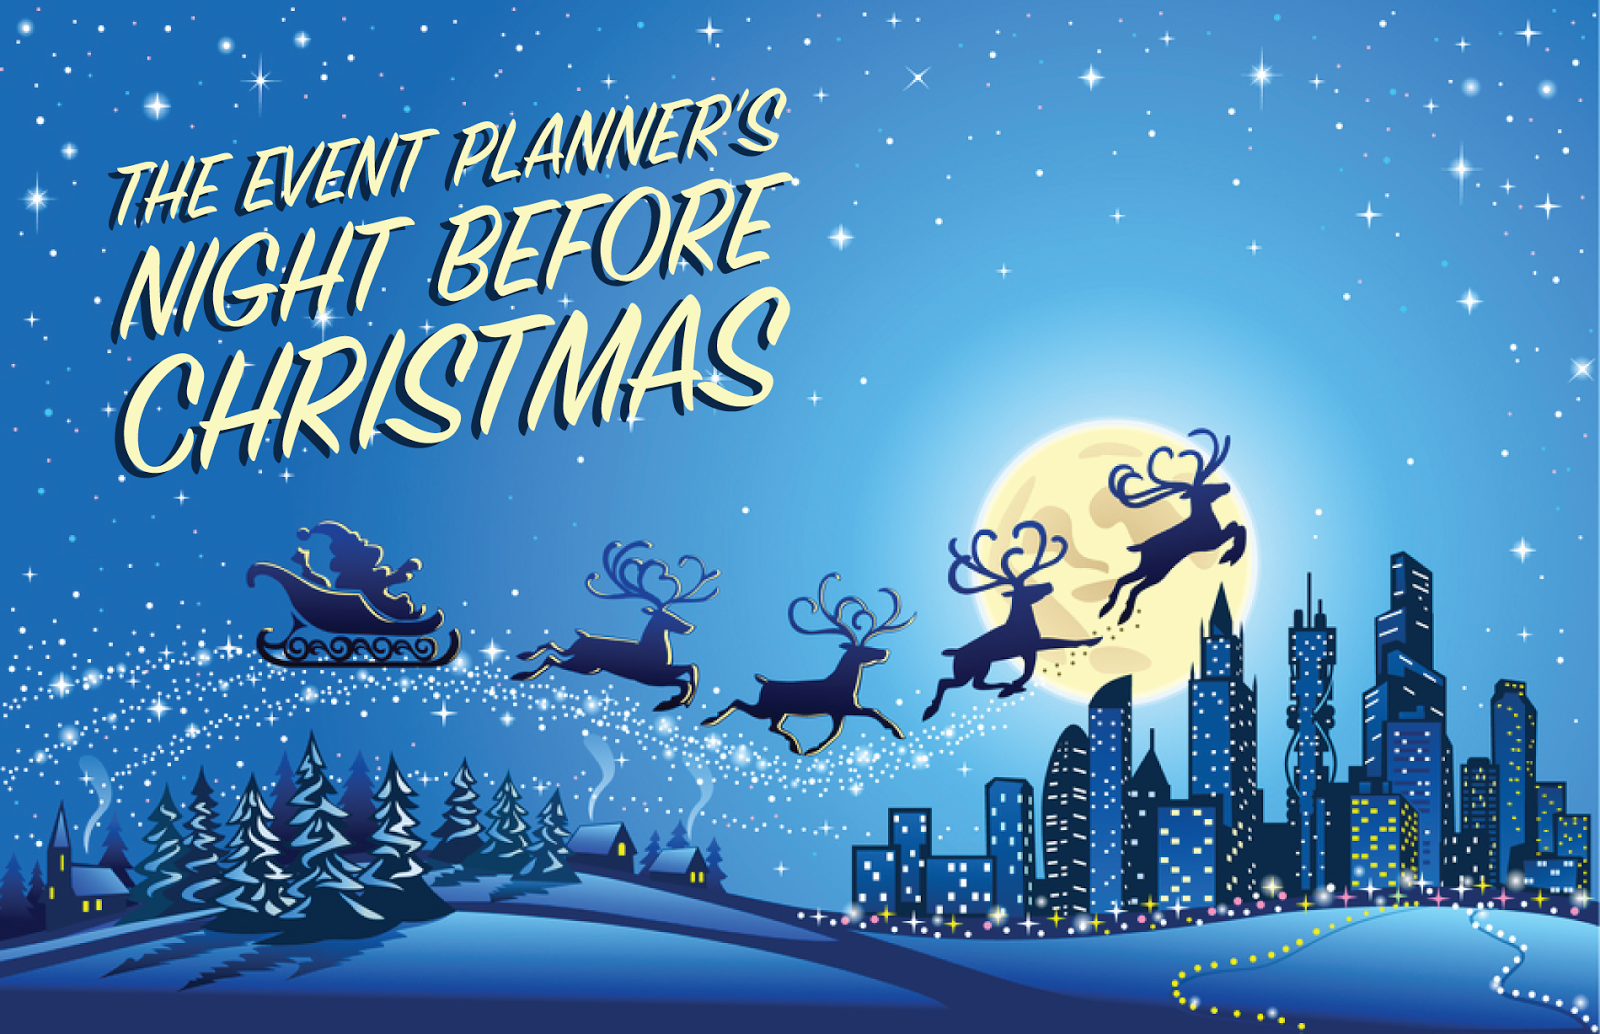 The Event Planner's Night Before Christmas